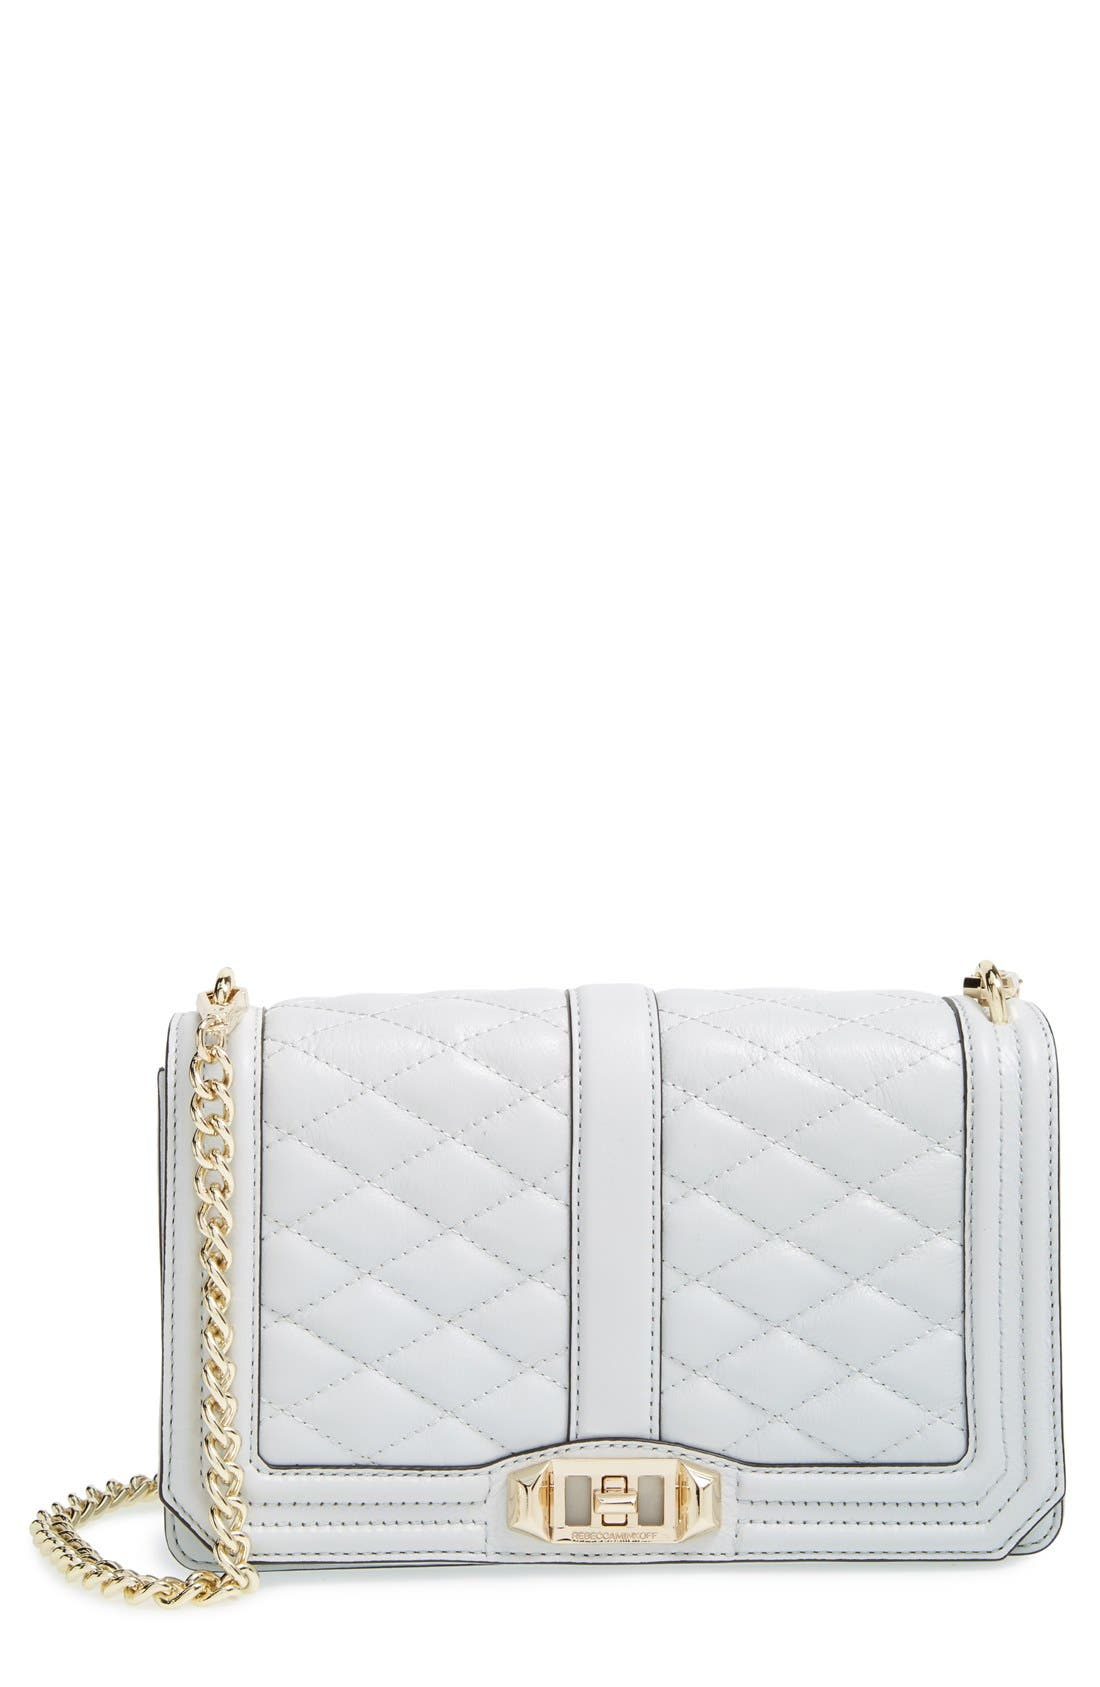 Alternate Image 1 Selected - Rebecca Minkoff Love Leather Crossbody Bag